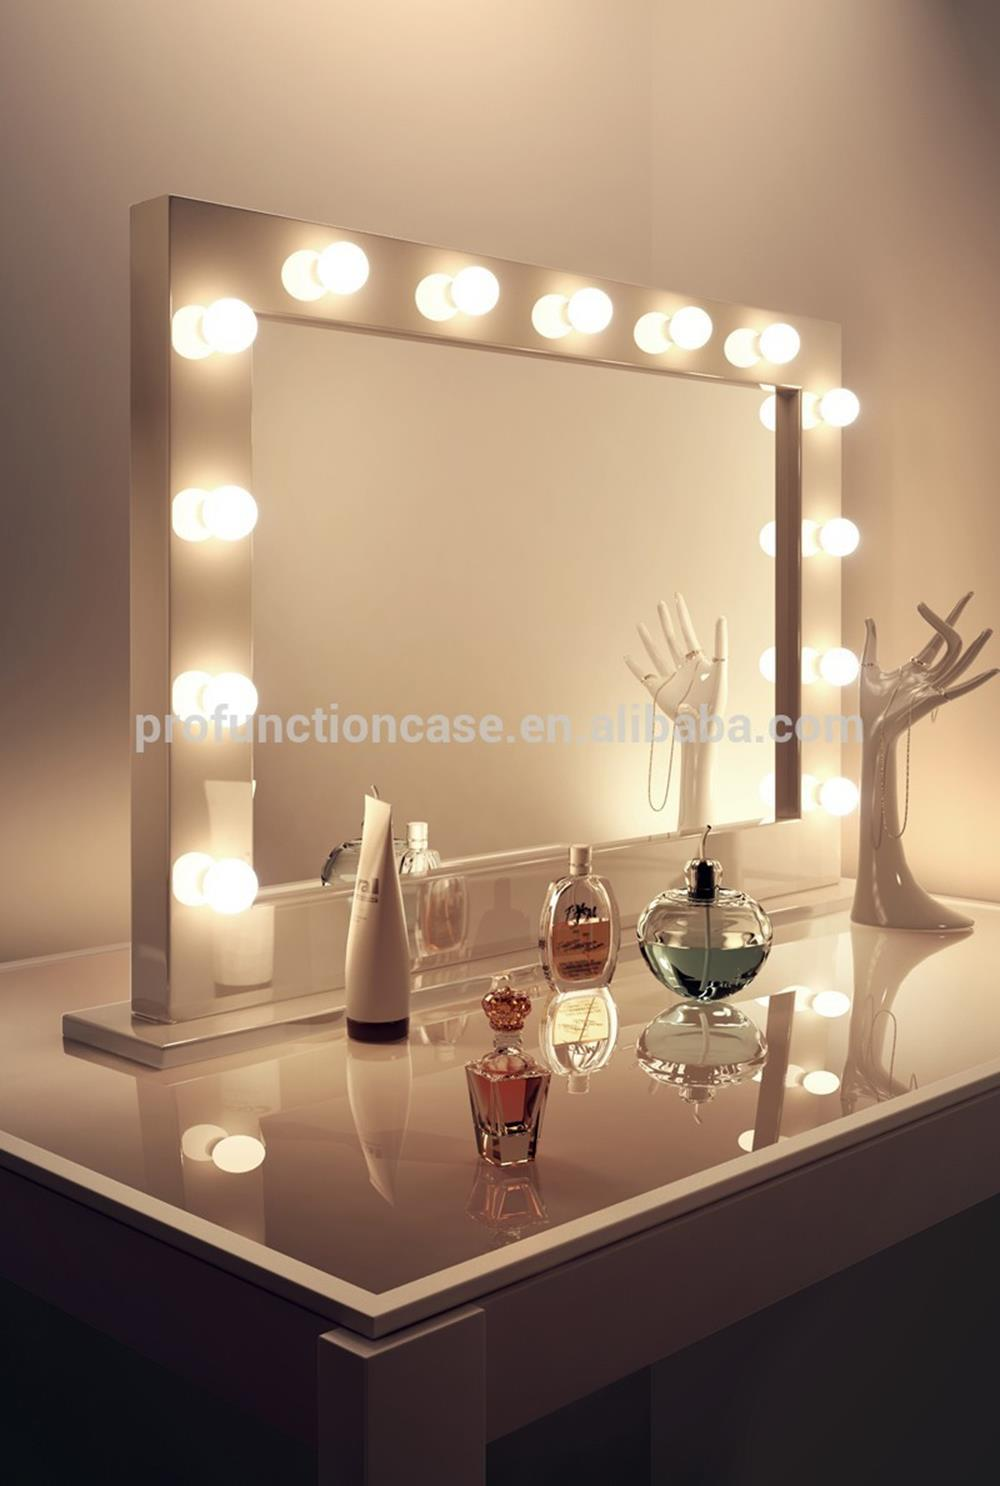 bedroom vanity set with lights around mirror 22 - gongetech